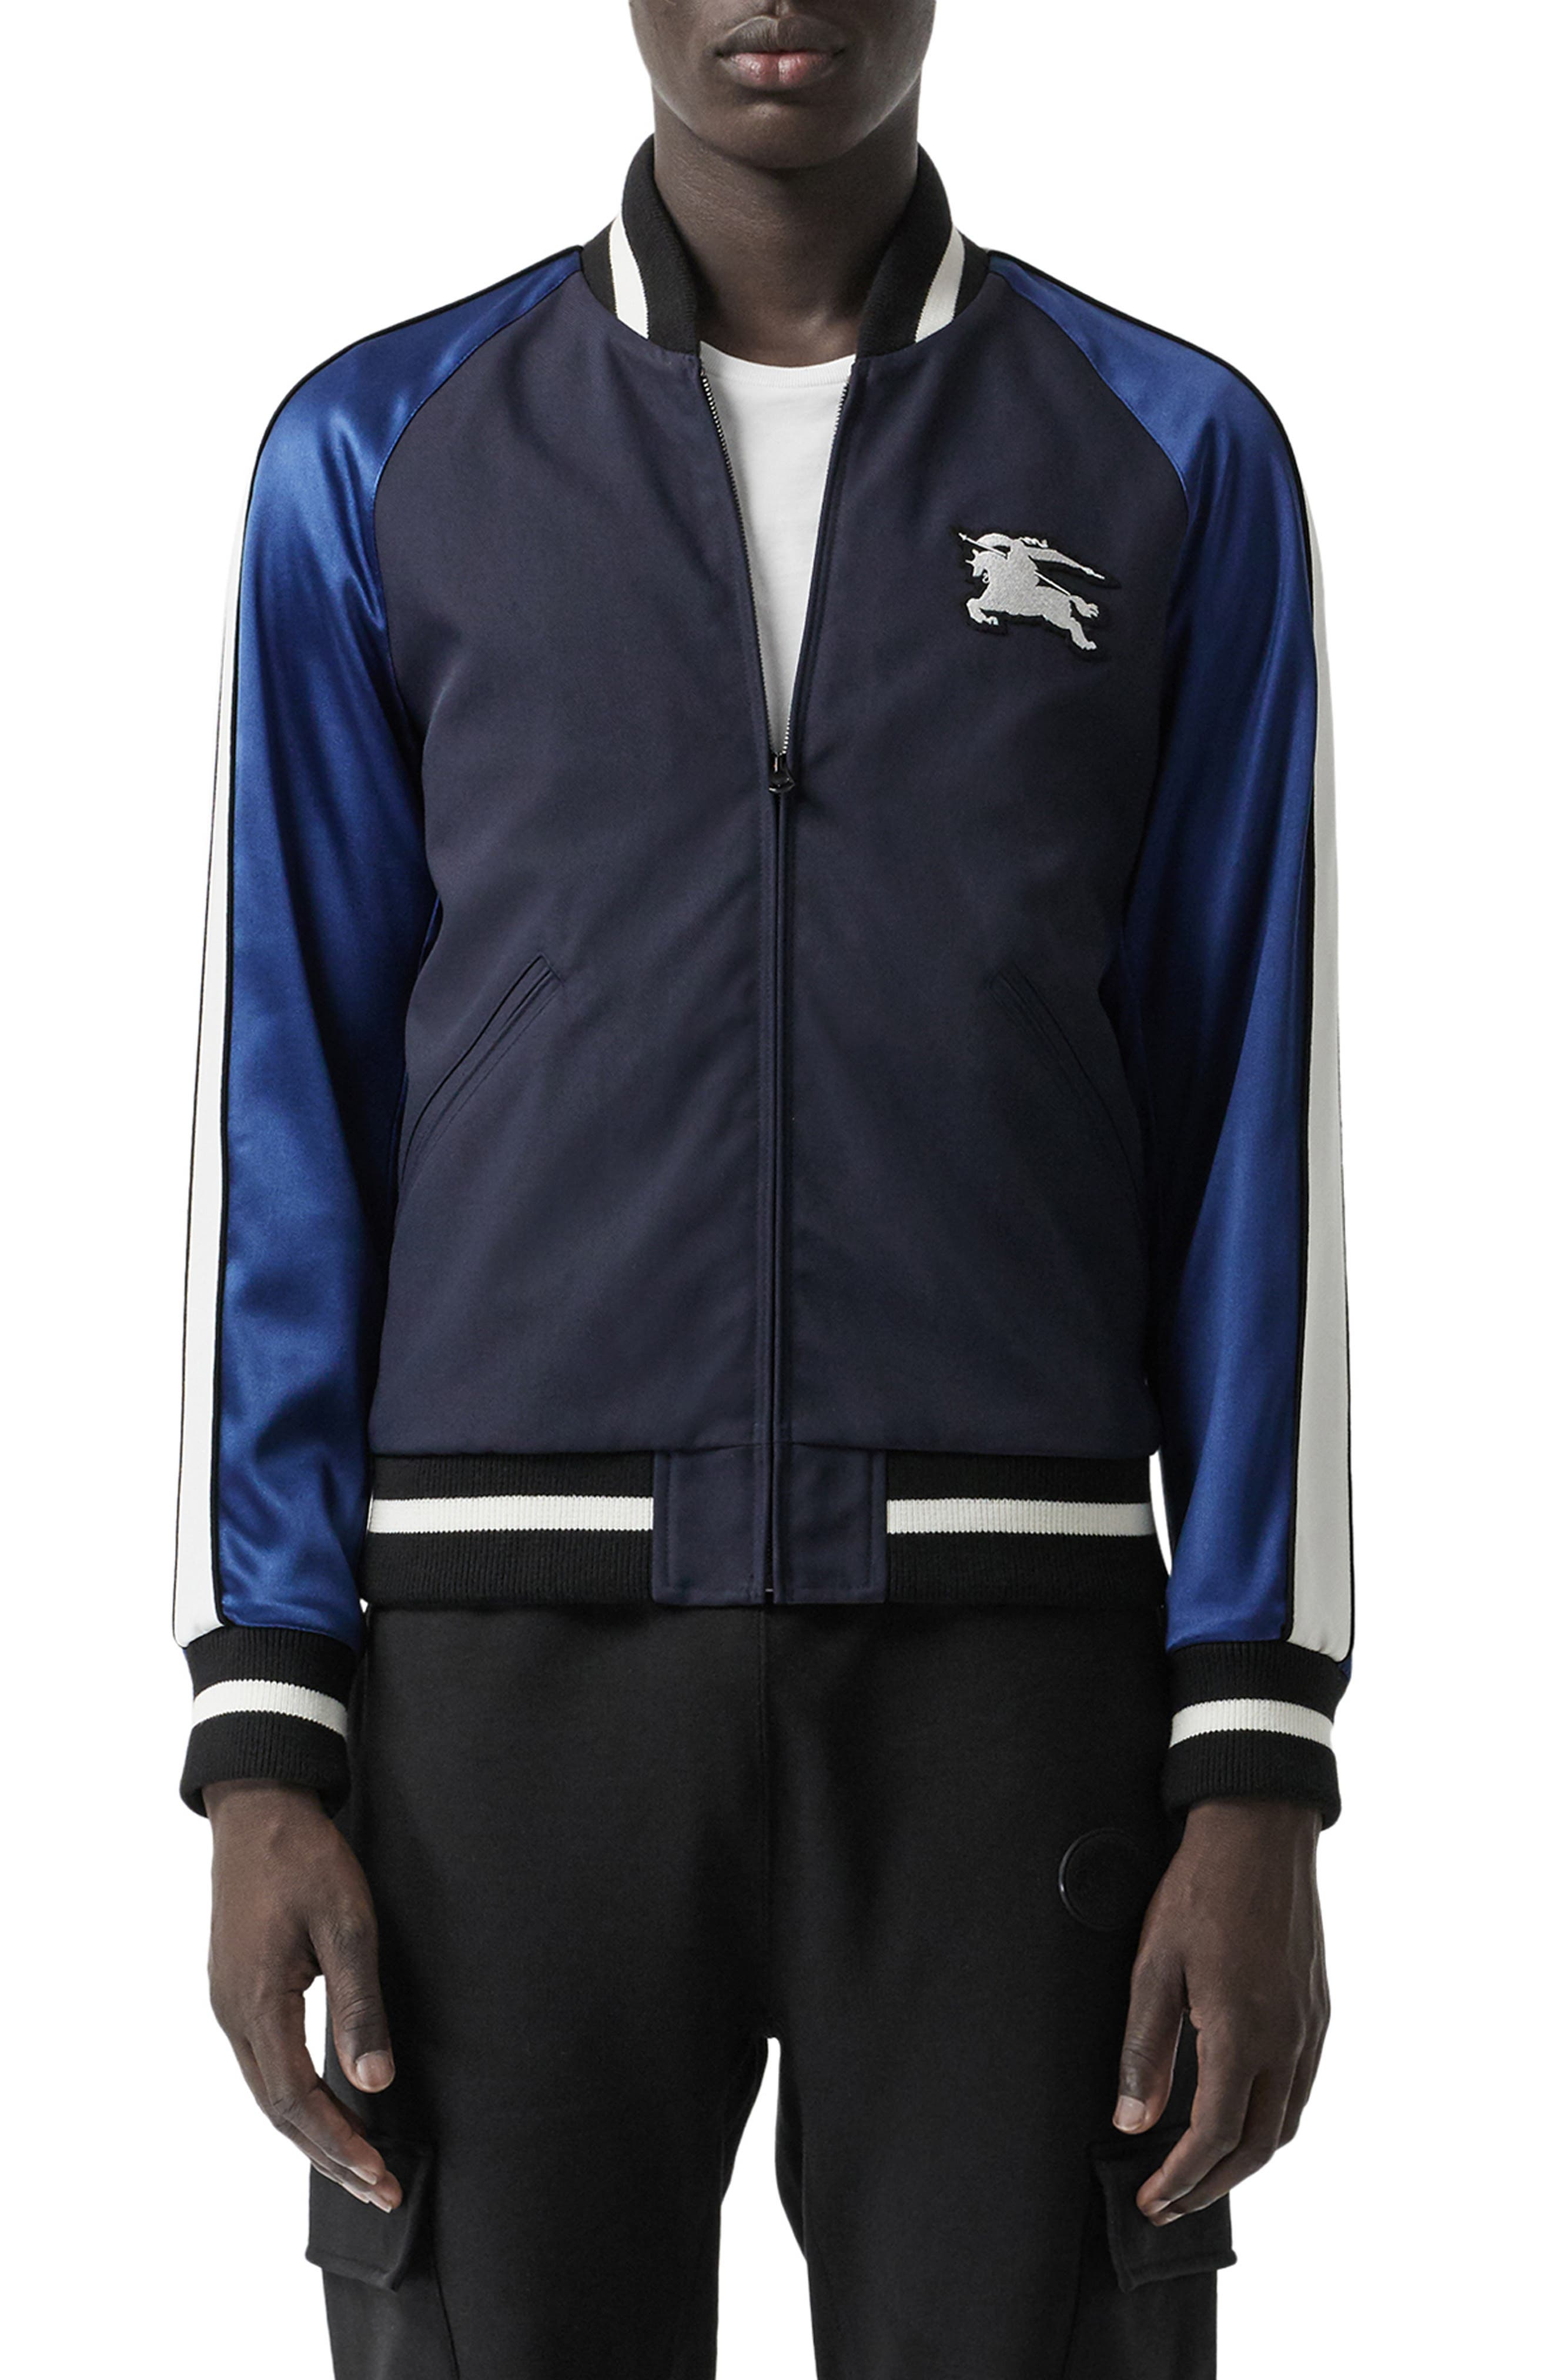 BURBERRY, Thornberry Zip Track Jacket, Main thumbnail 1, color, NAVY